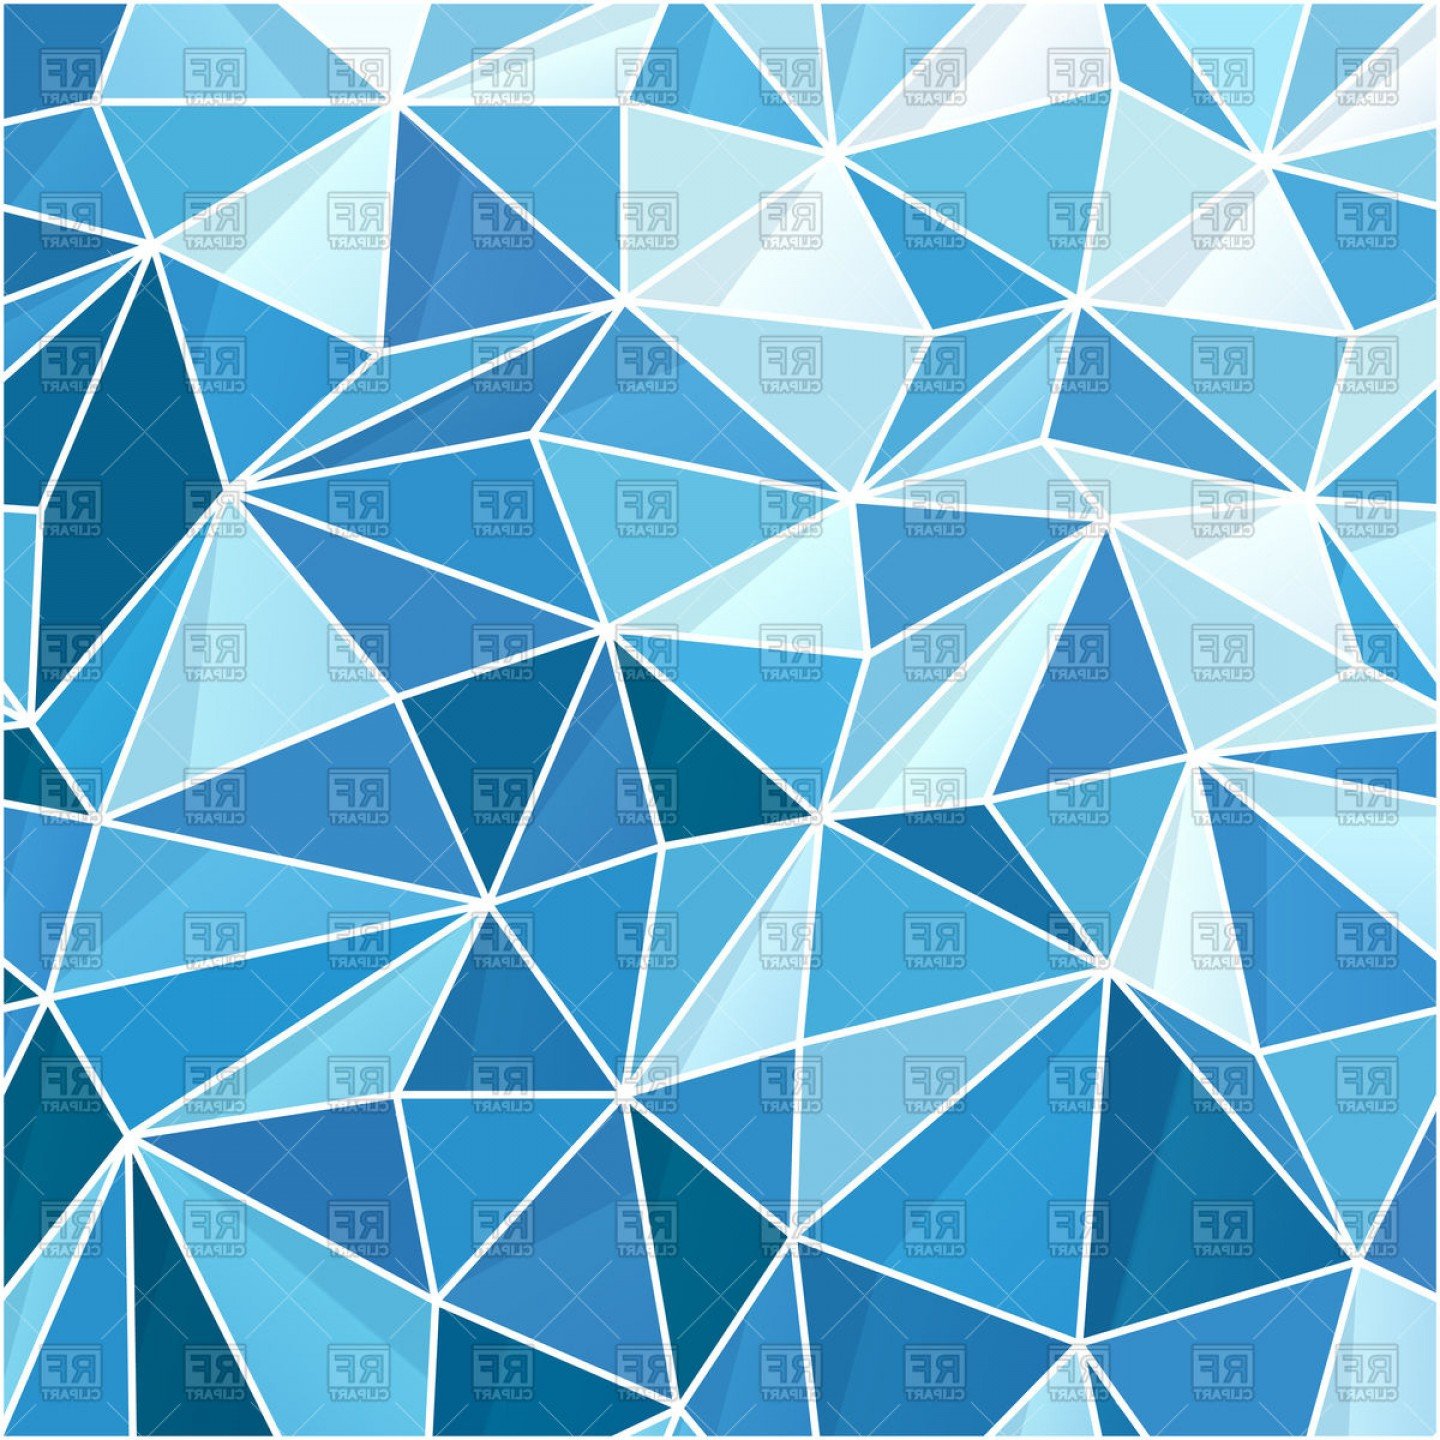 Blue geometric background clipart royalty free Geometric Vector Art Backgrounds | lamaison royalty free